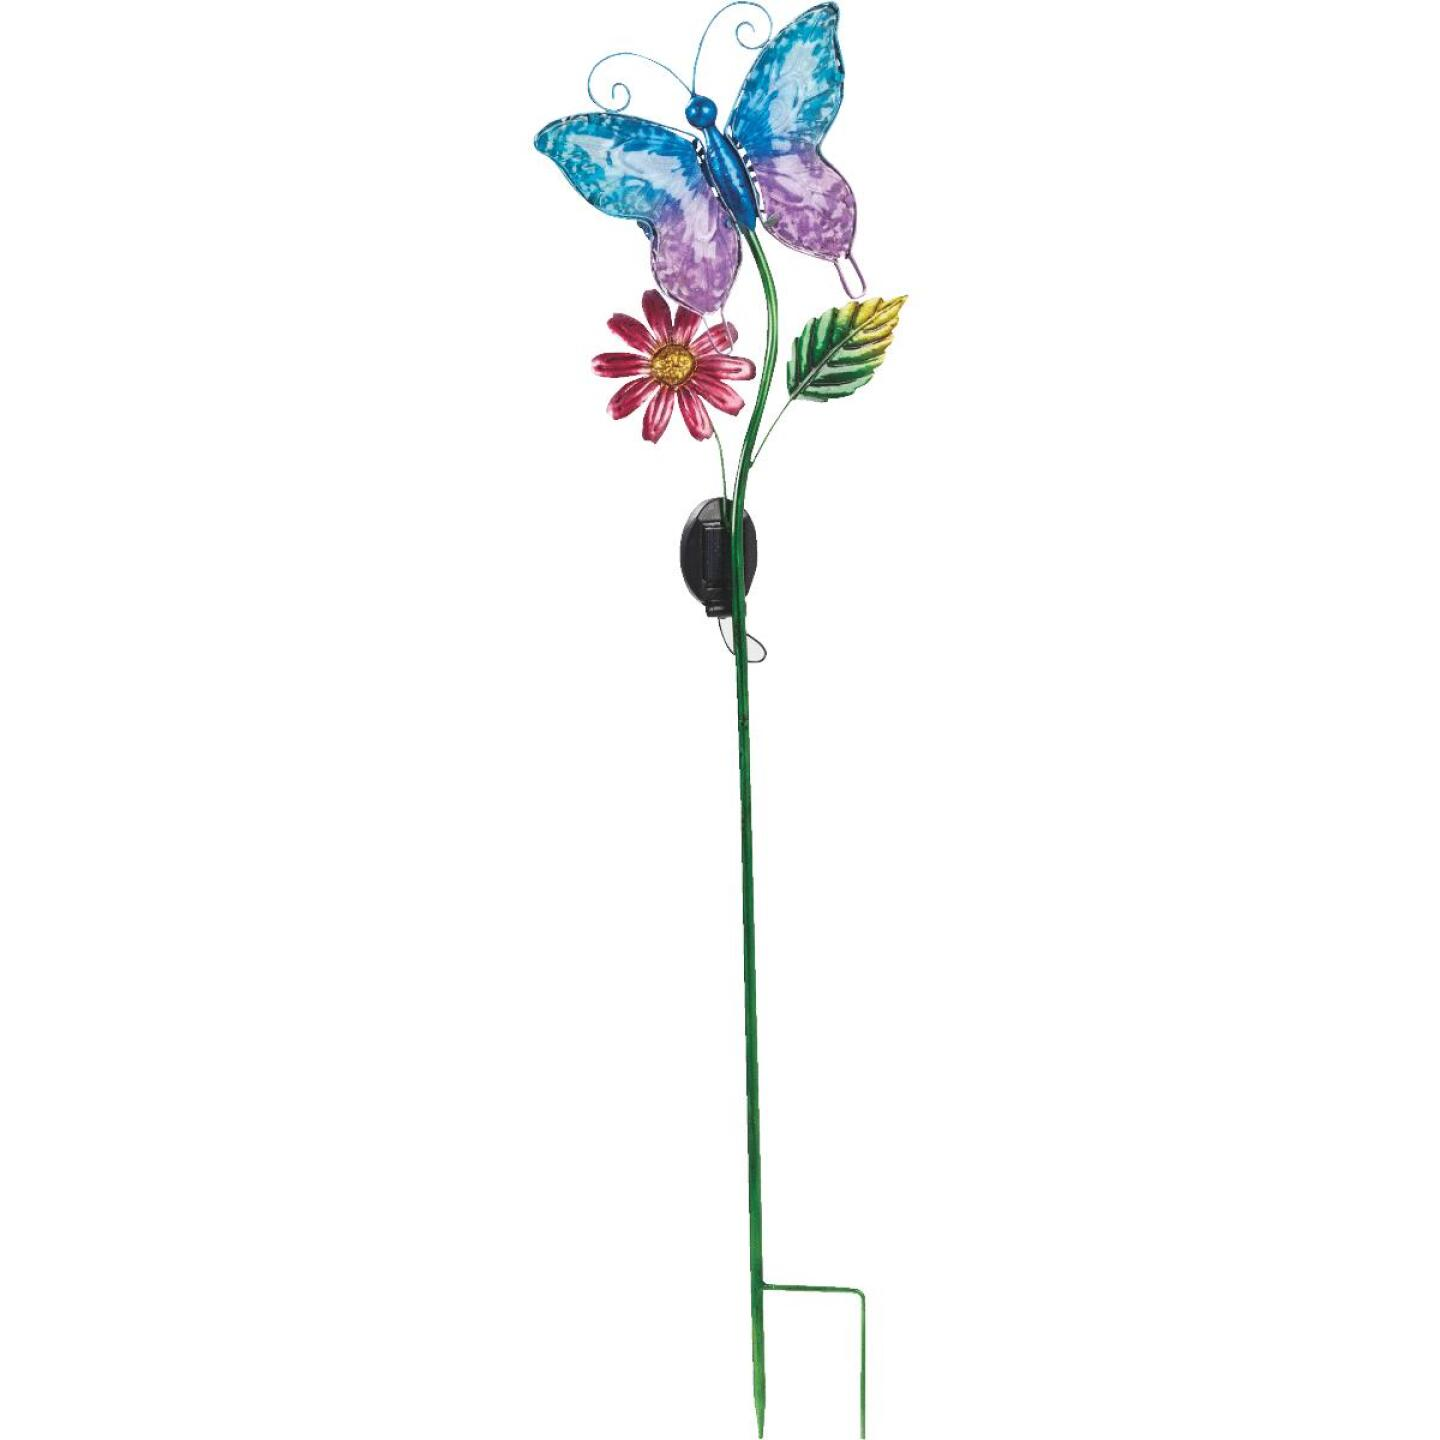 Outdoor Expressions Steel & Glass 20.5 In. H. Solar Stake Light Image 4